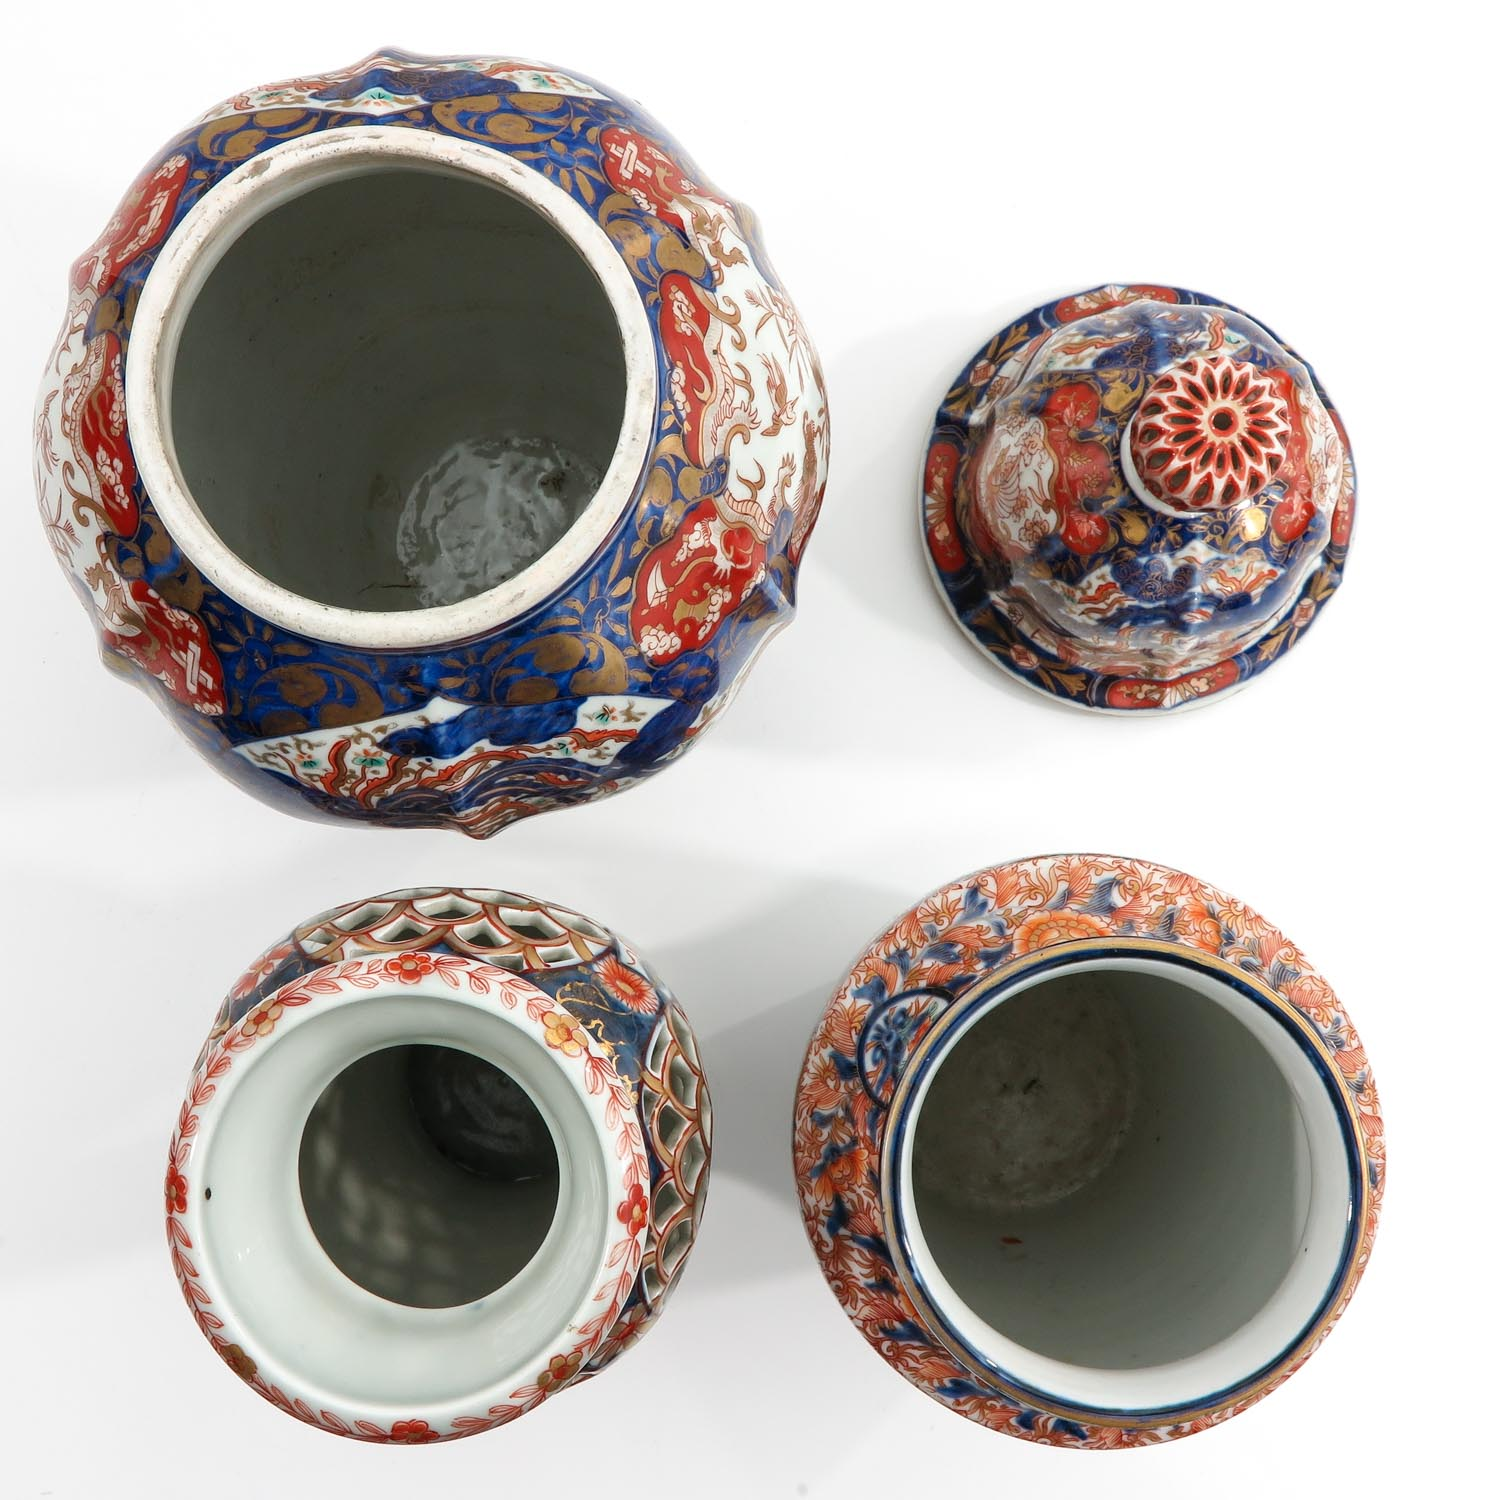 A Collection of 3 Imari Vases - Image 5 of 9